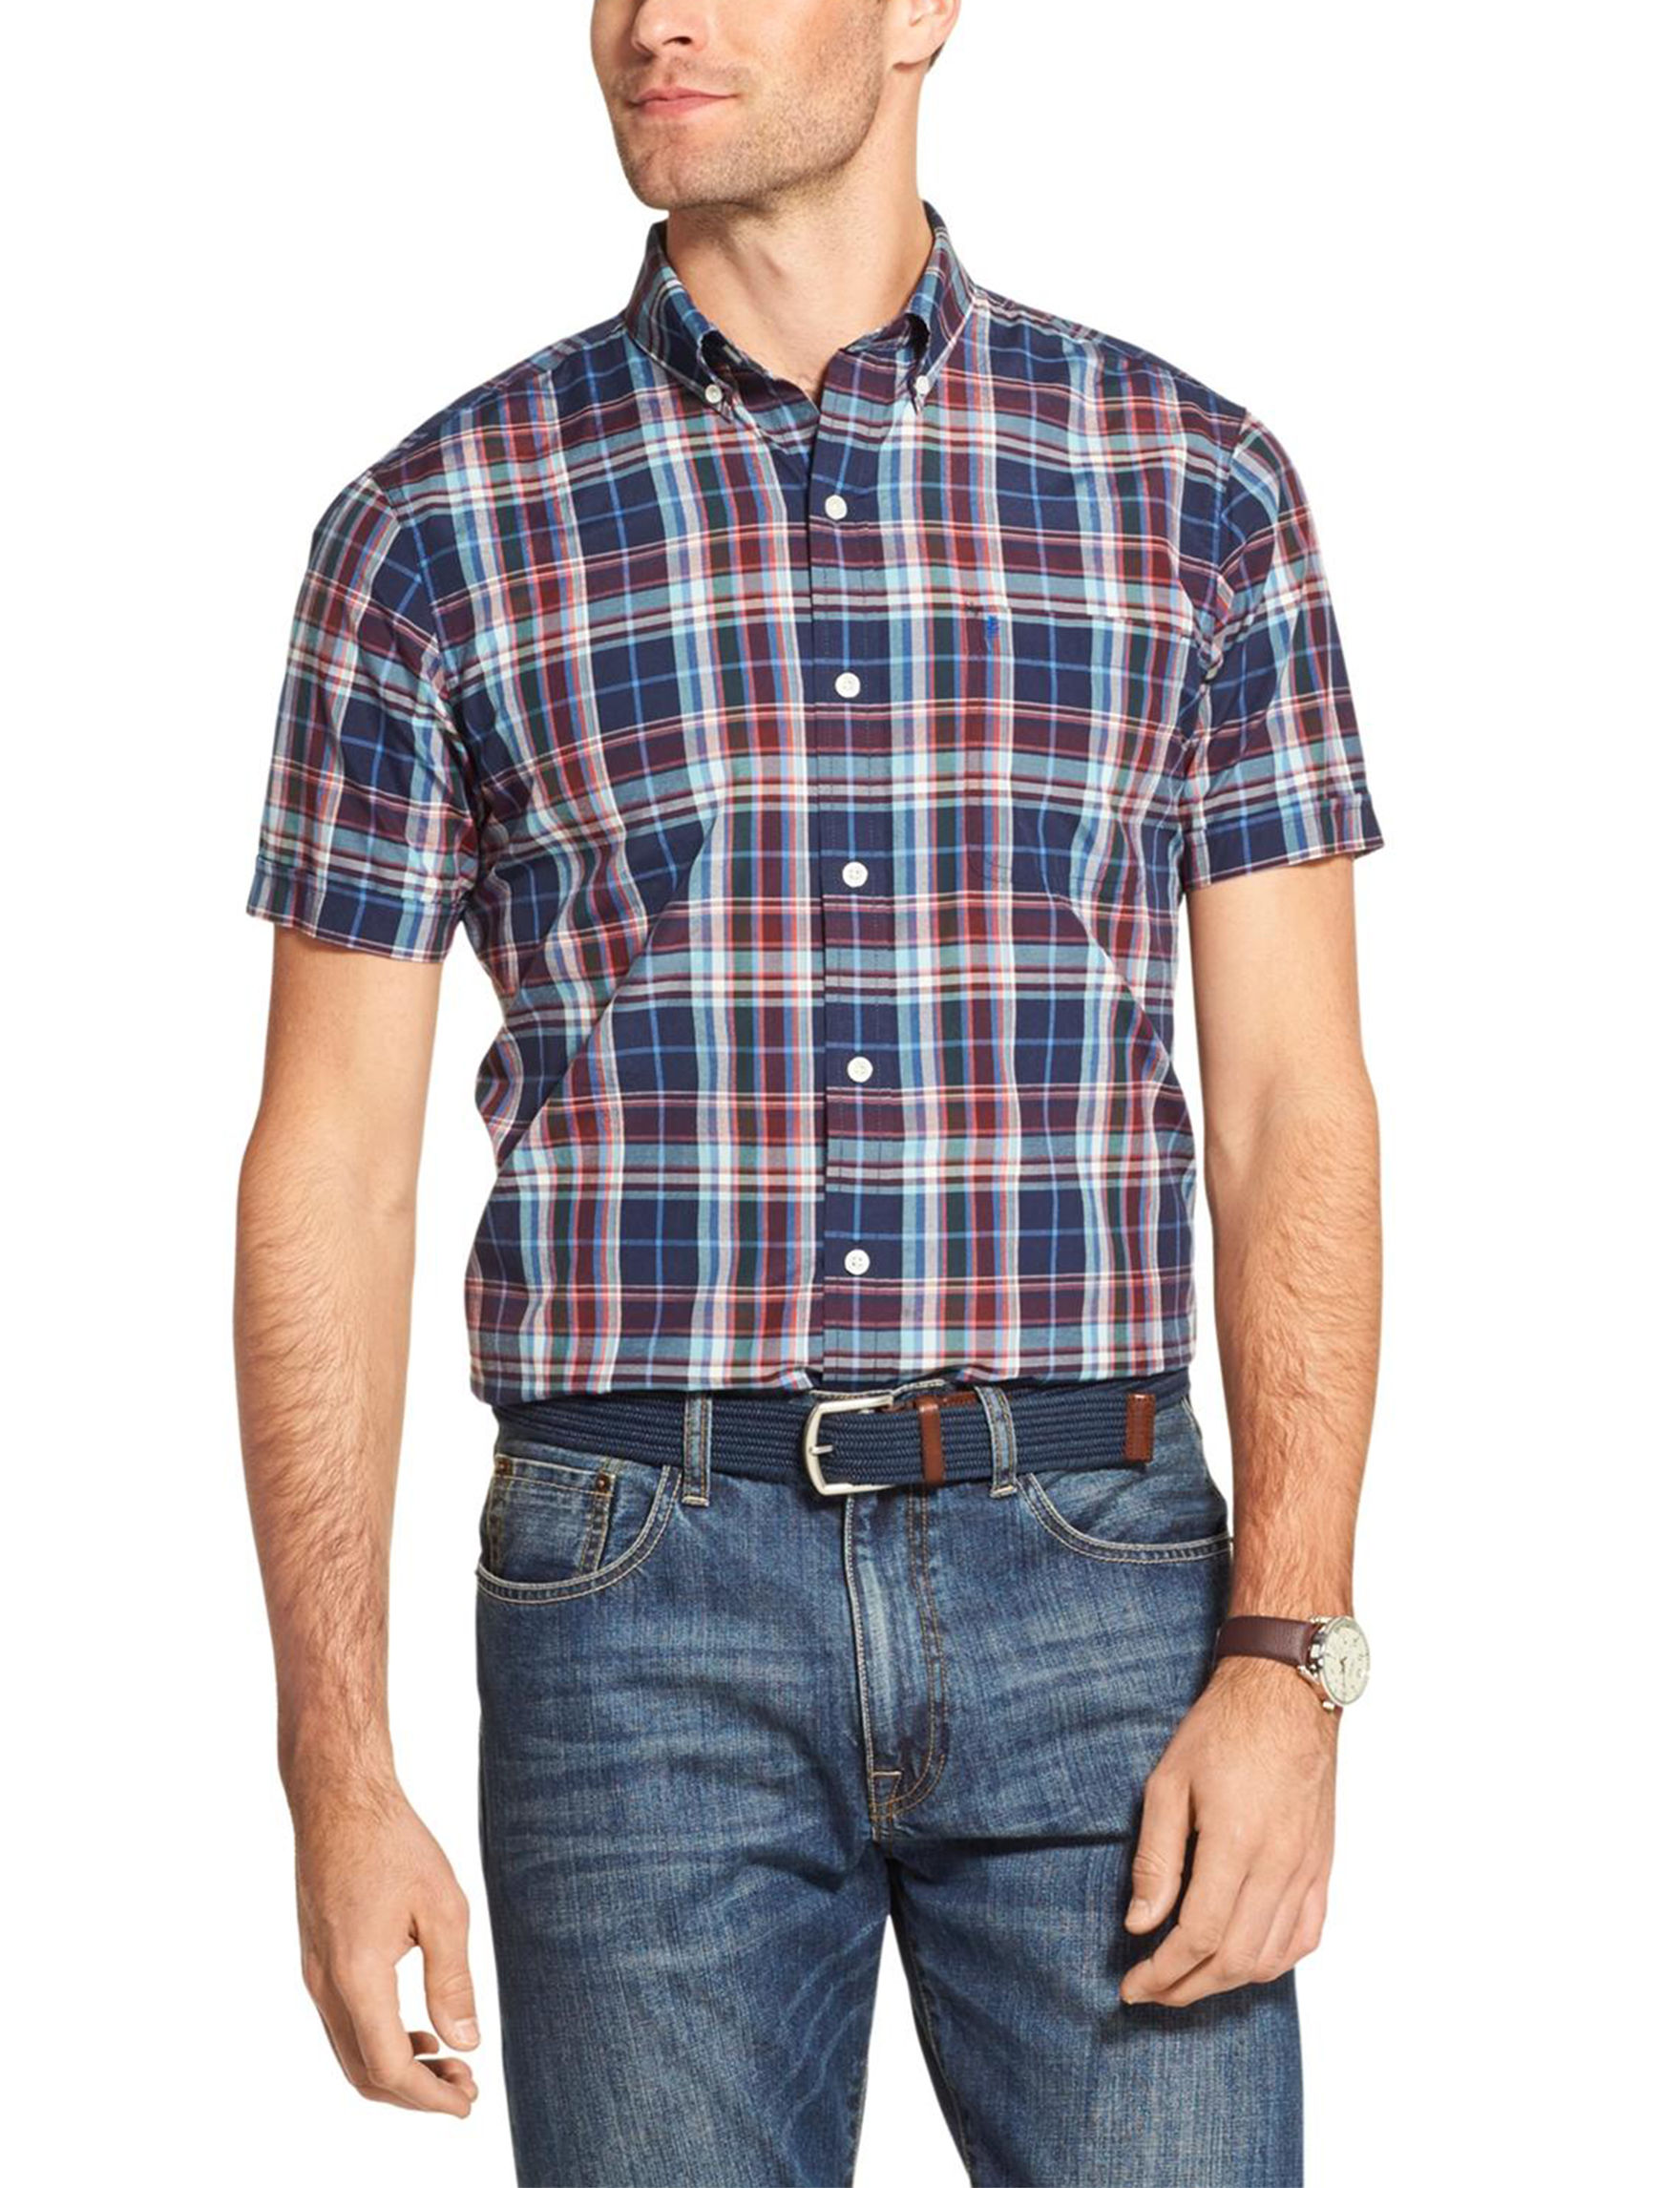 Izod Peacoat Casual Button Down Shirts